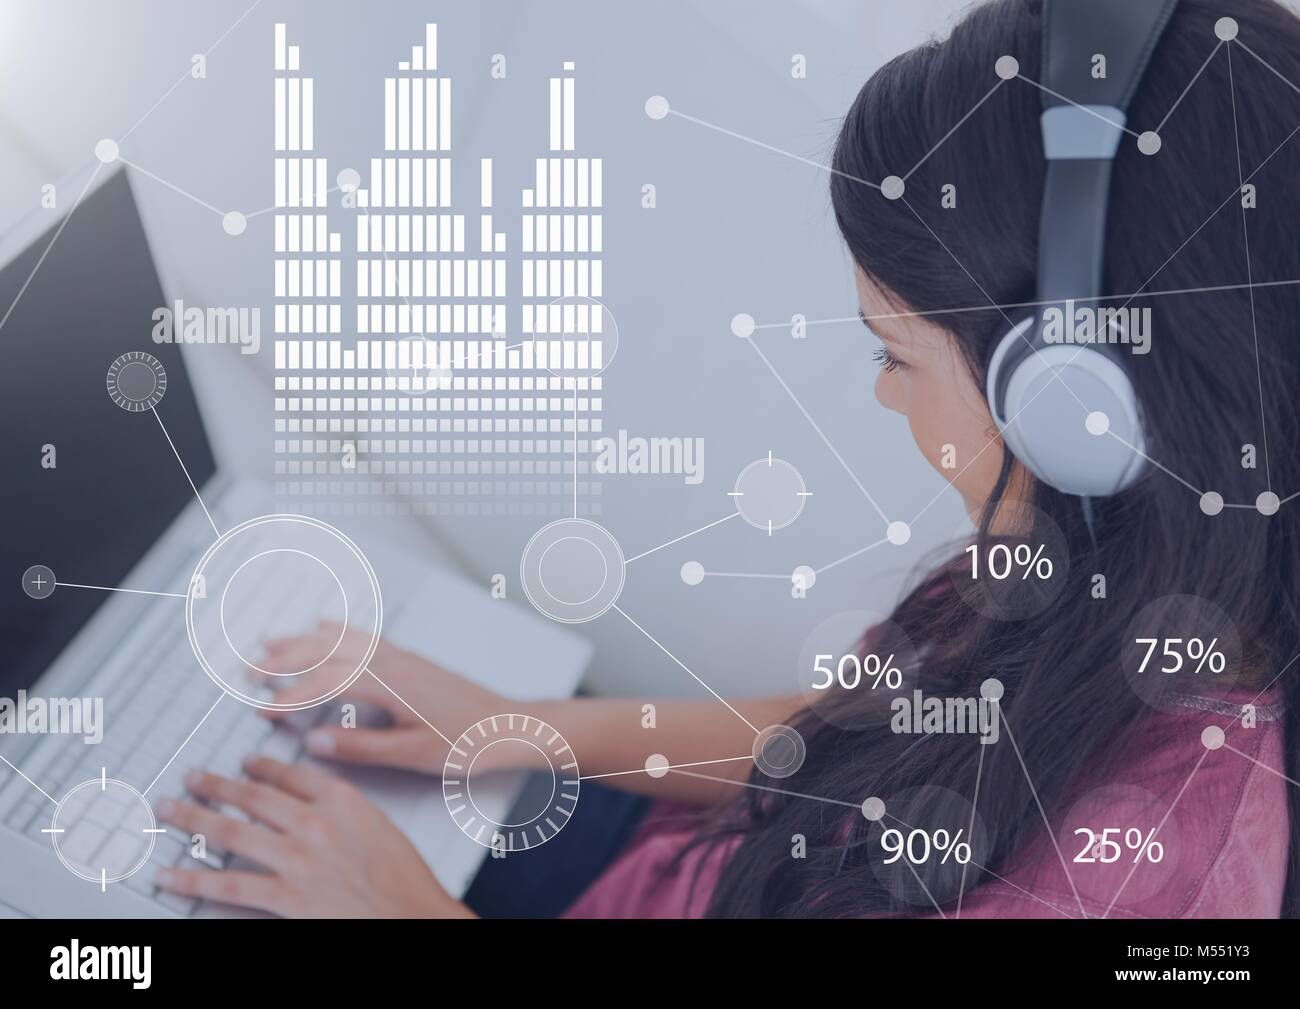 hight resolution of business overlay interface with woman wearing headset earphones and laptop